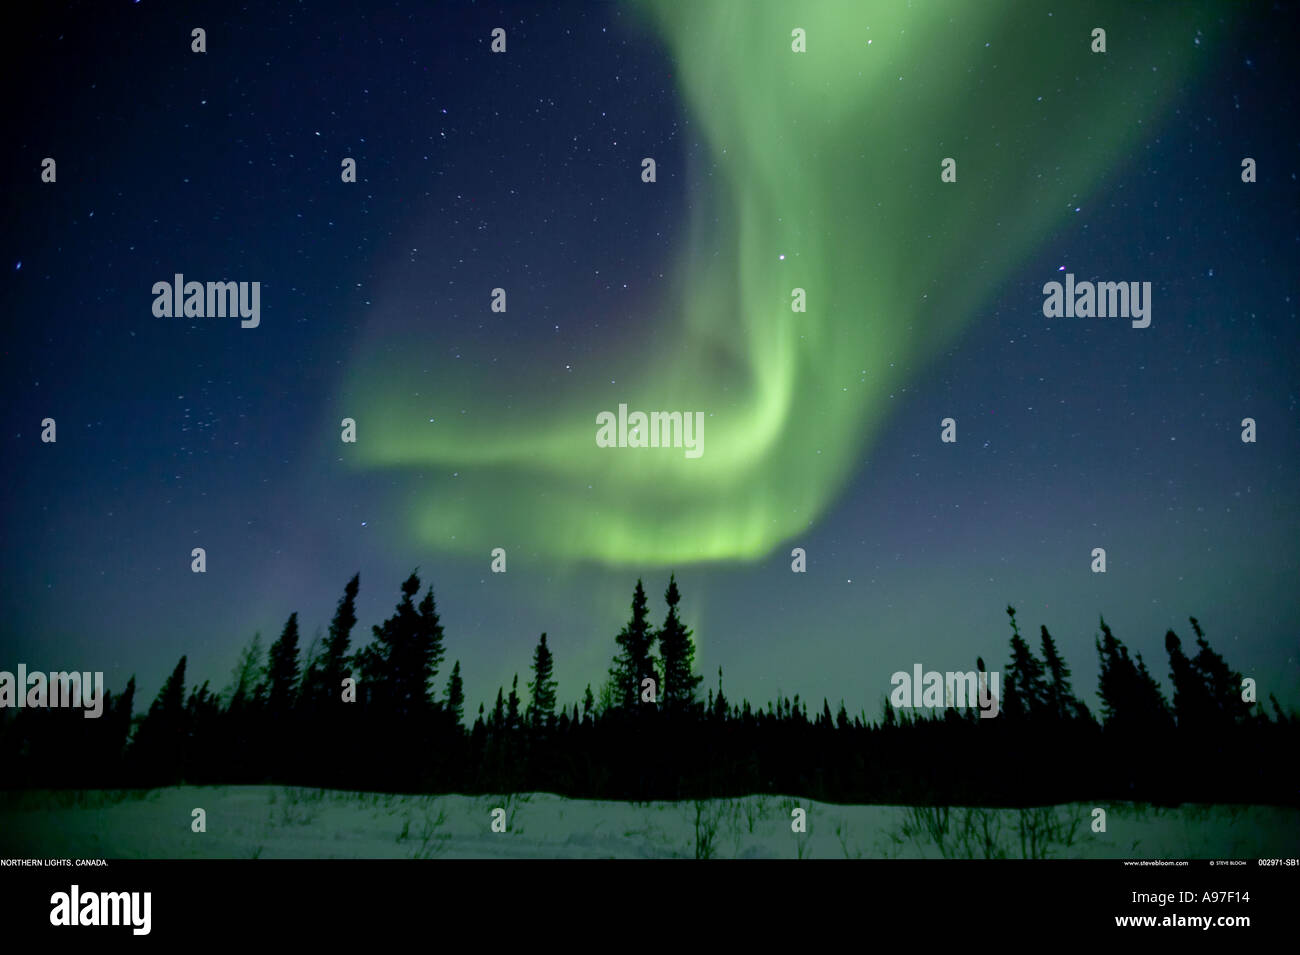 Northern Lights Aurora borealis Canada - Stock Image